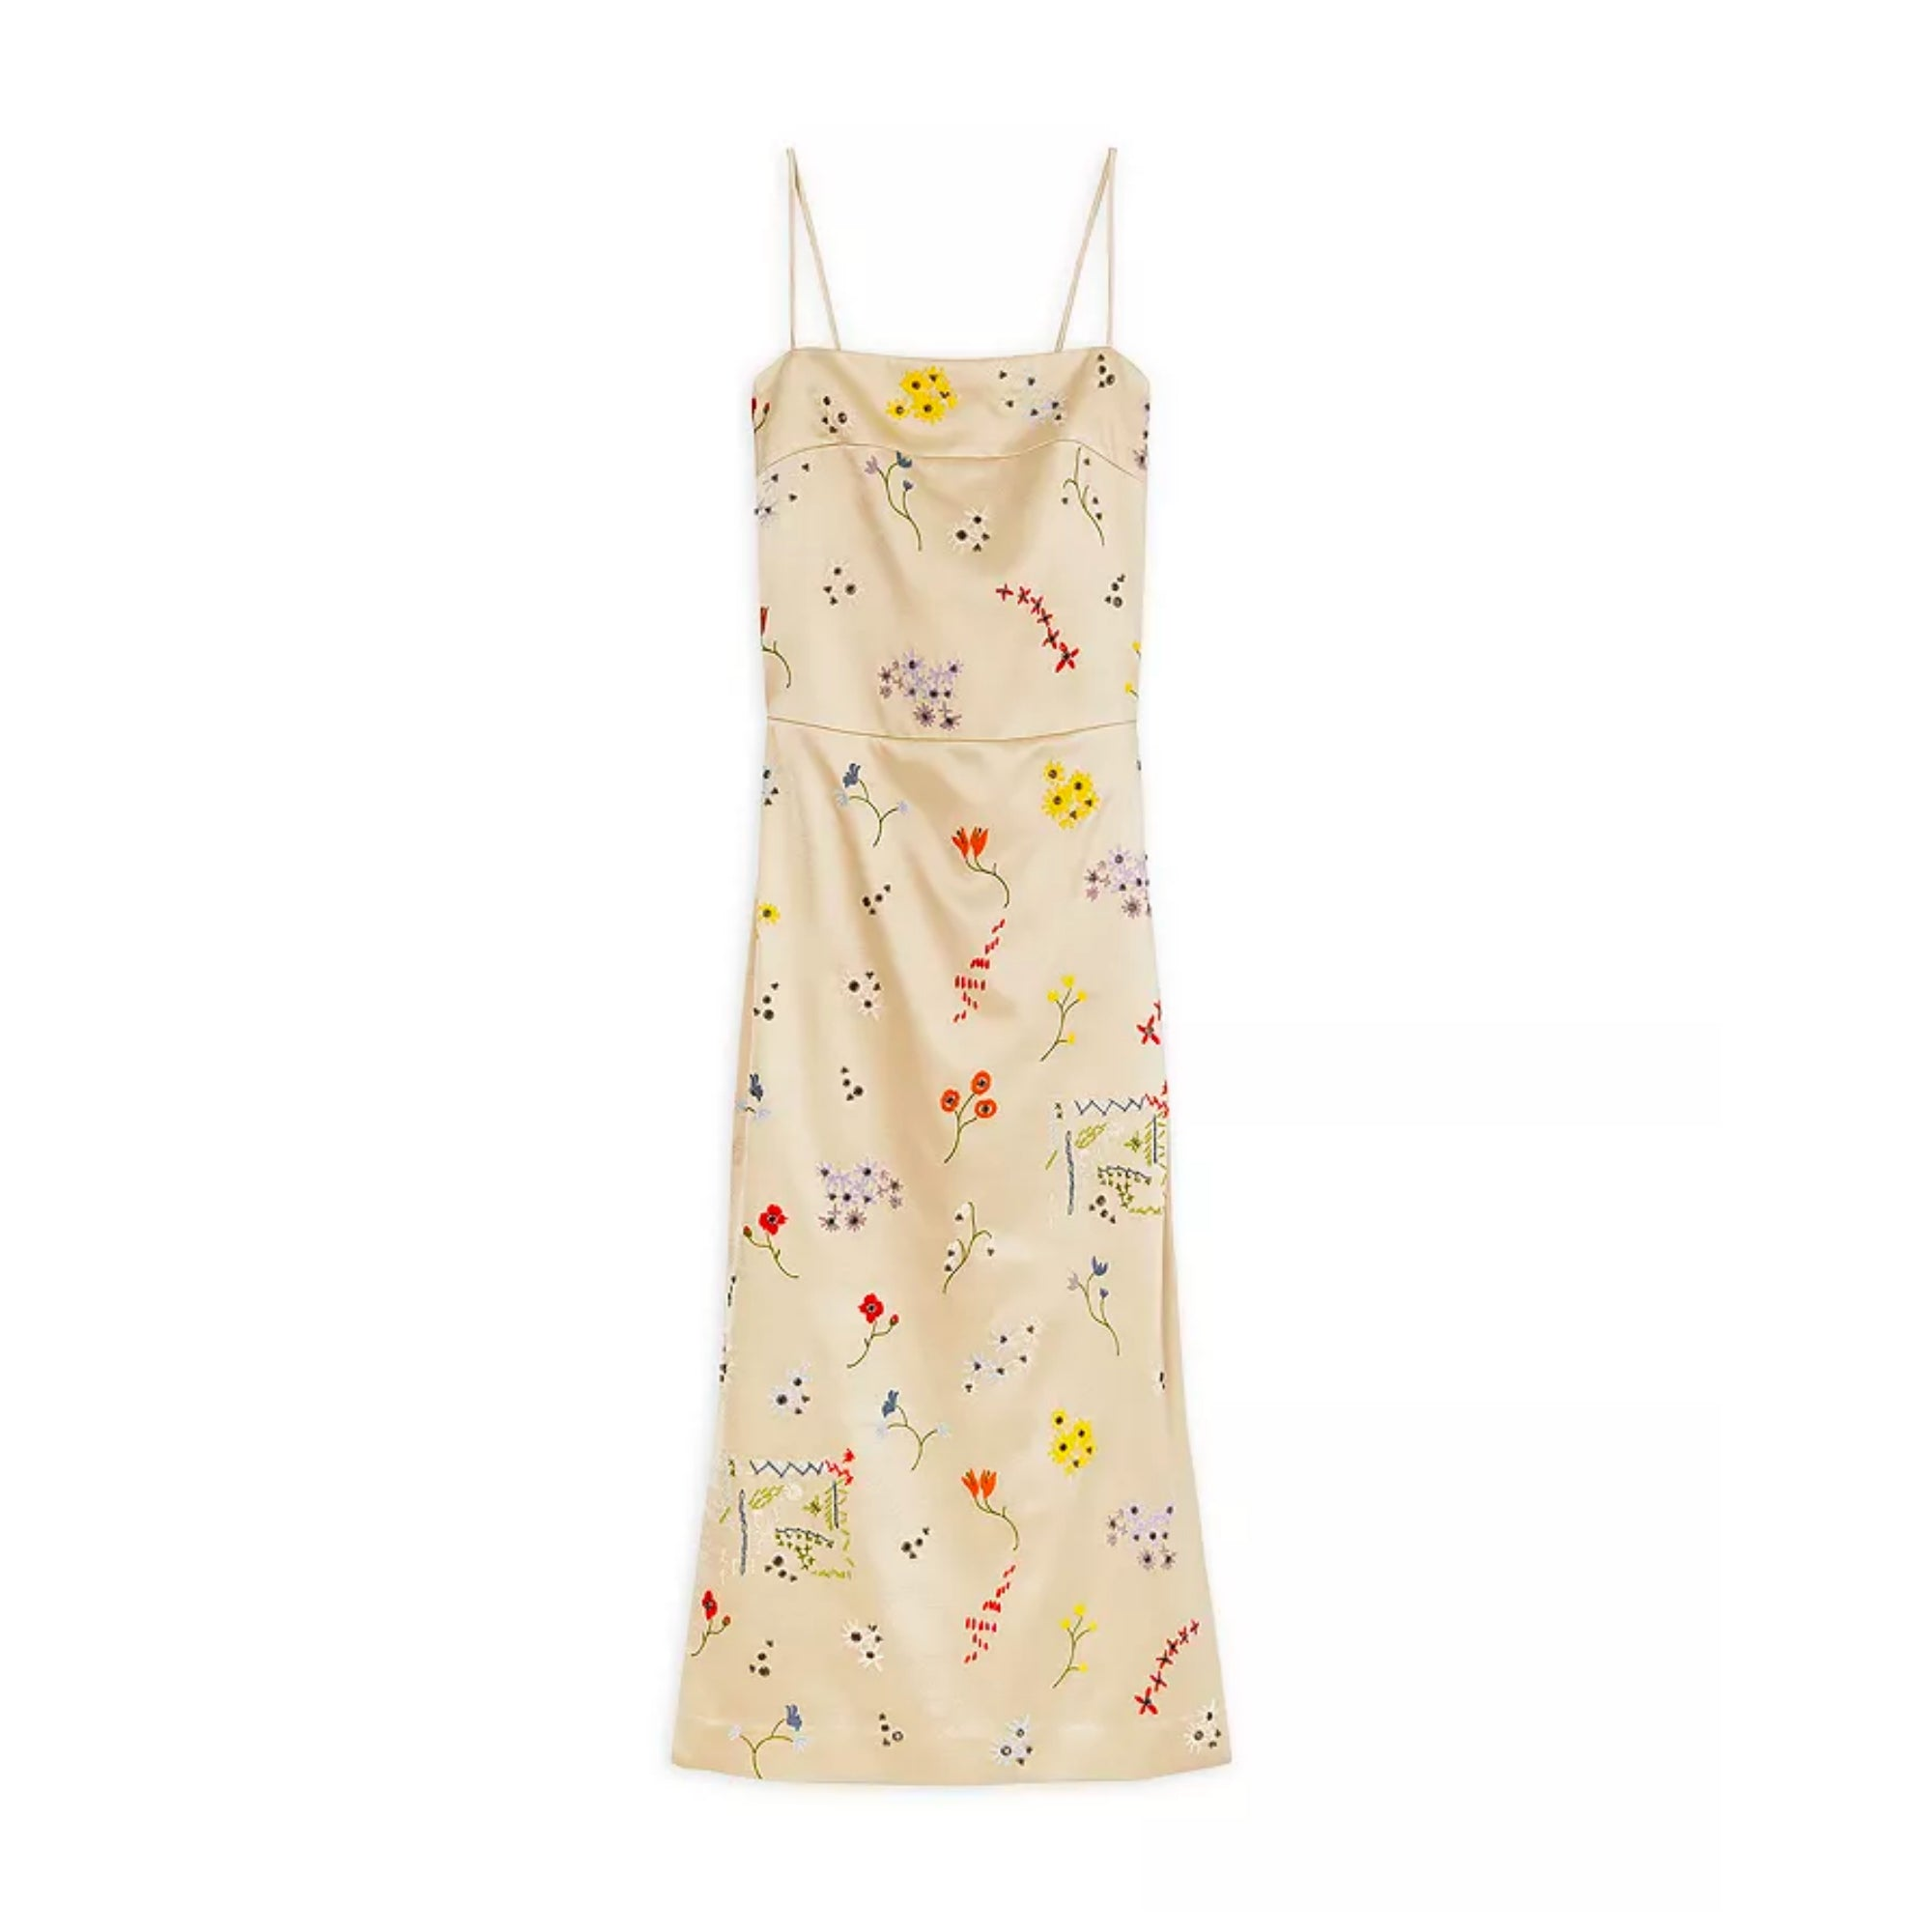 TORY BURCH Embroidered Sheath Midi Dress